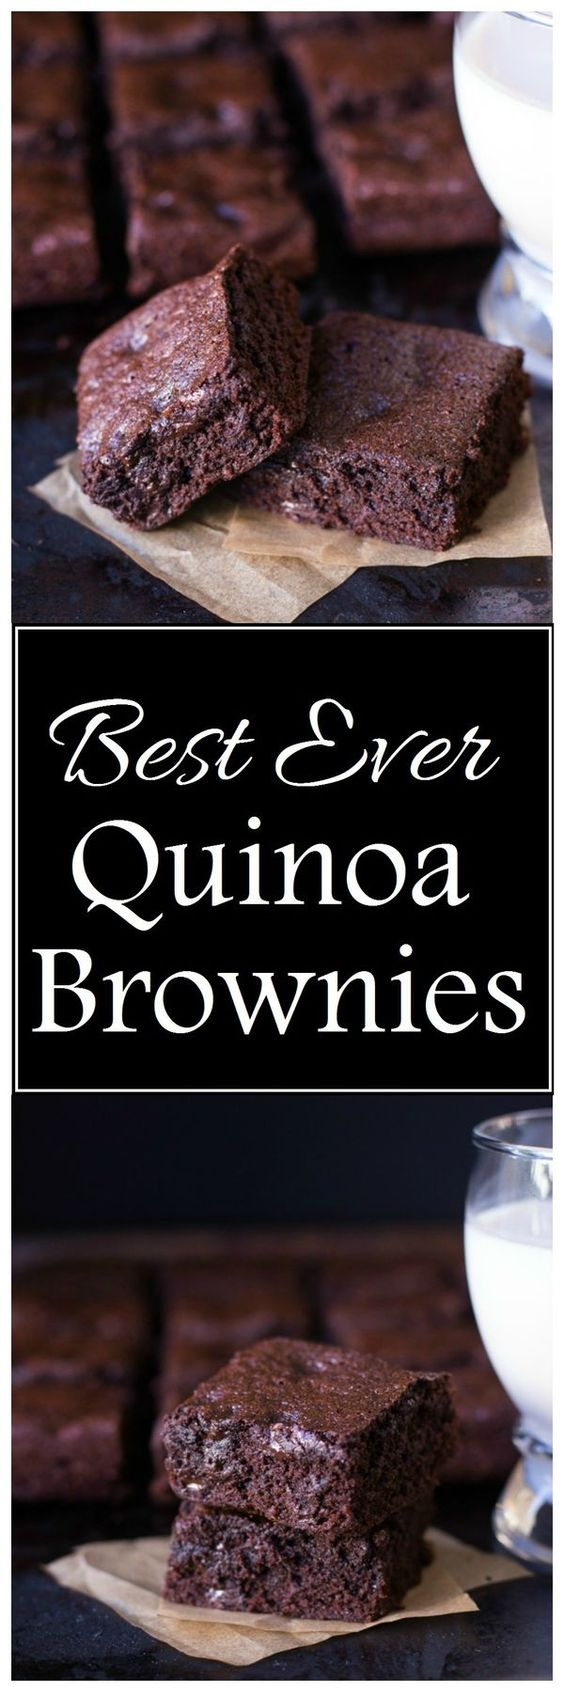 Best-Ever Quinoa Brownies | Recipe | Quinoa, Brownies and Gluten free